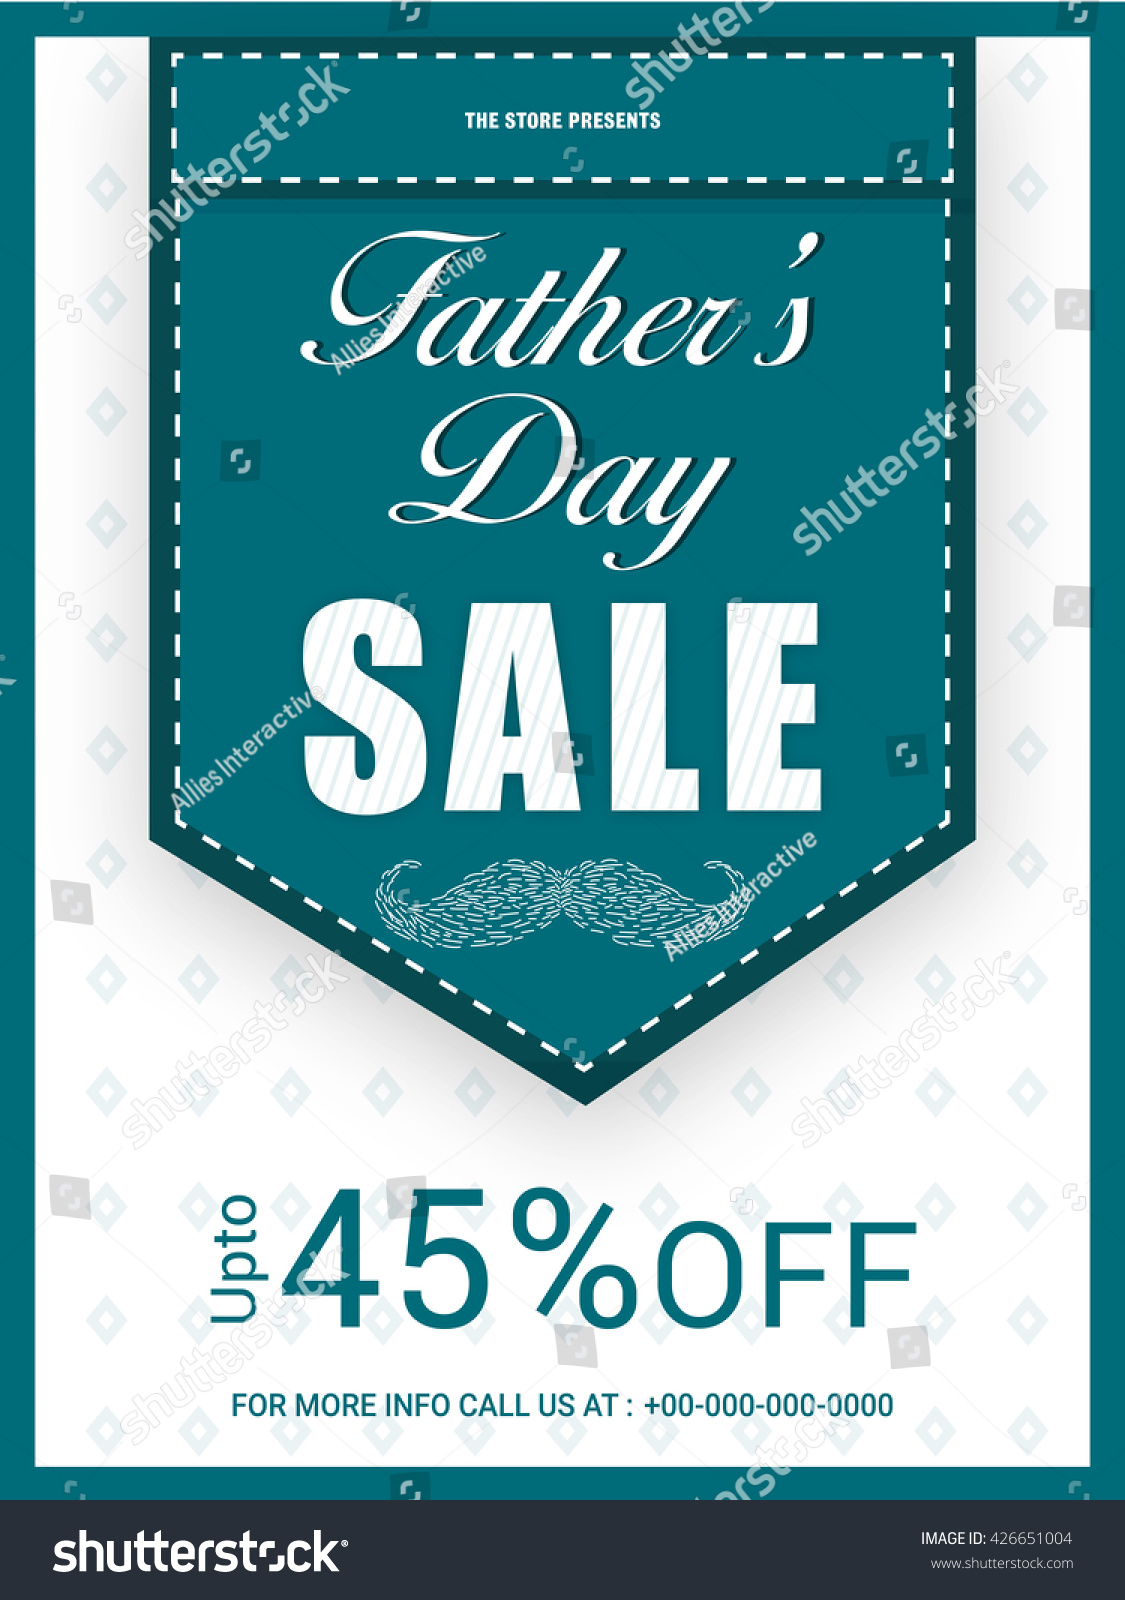 c36f29774149d Fathers Day Sale Template Sale Banner Stock Vector (Royalty Free ...